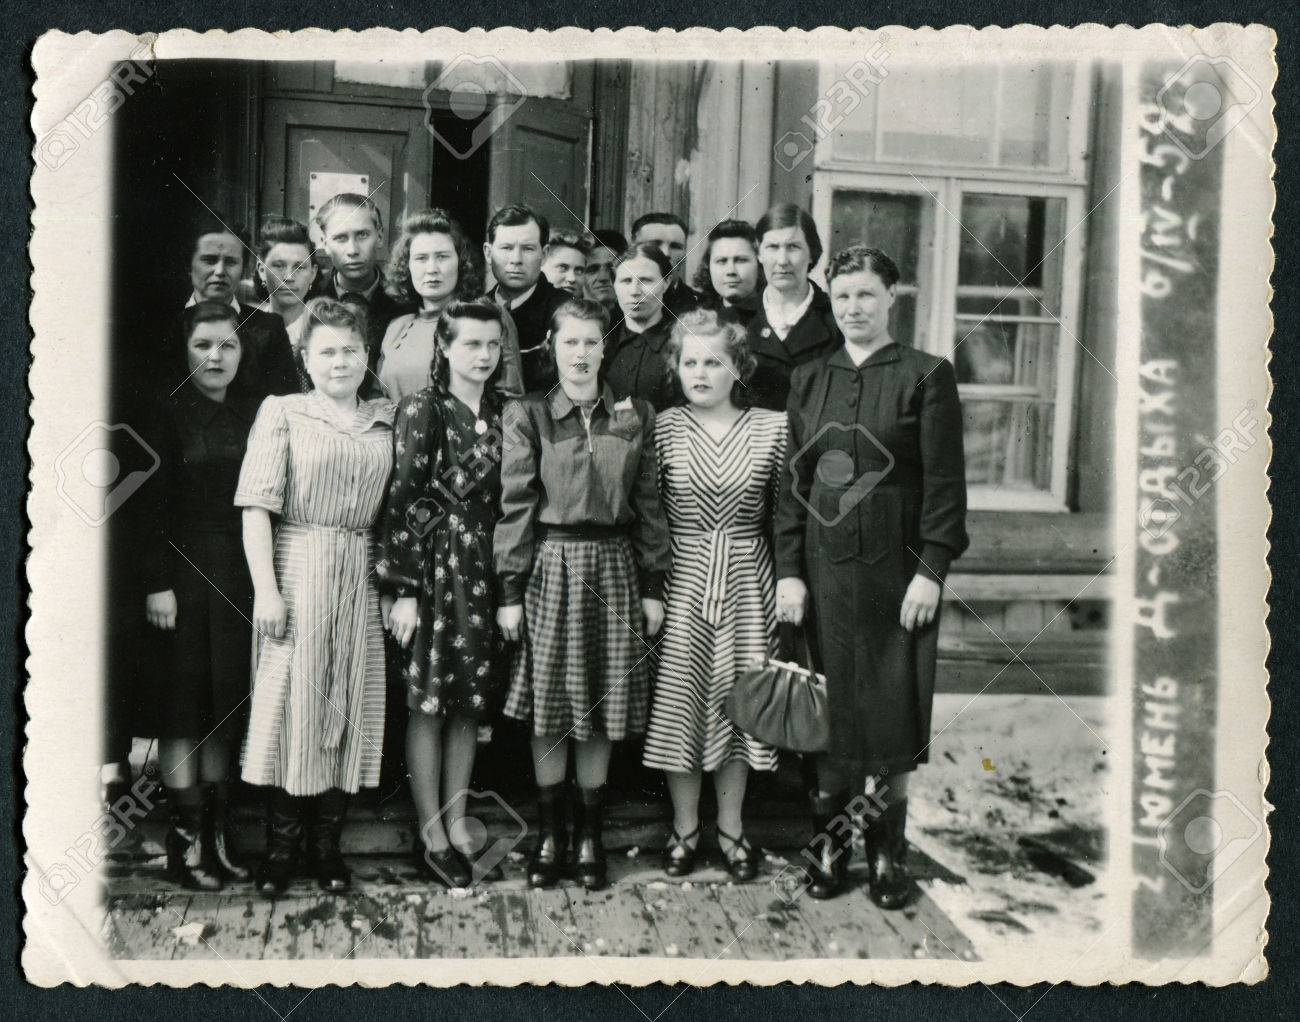 Ussr circa 1950s an antique black white photo show group travelers caption